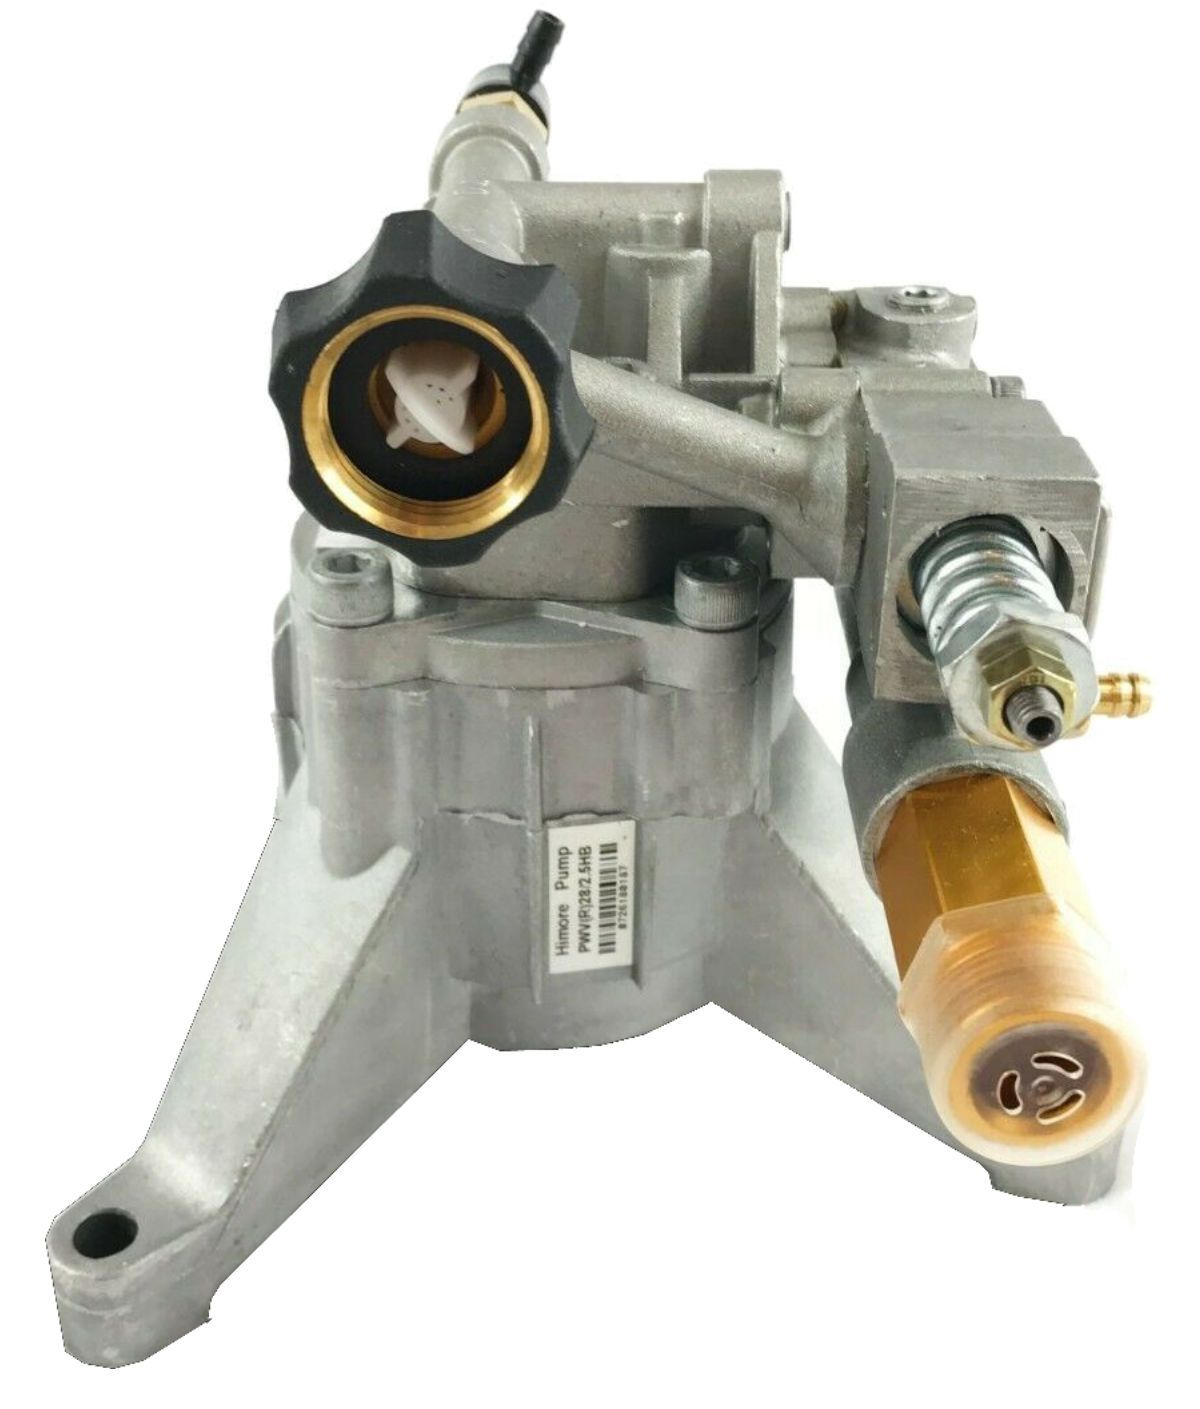 2700 PSI PRESSURE WASHER WATER PUMP fits Troy-Bilt 020413 020413-1 -2 - AE-Power